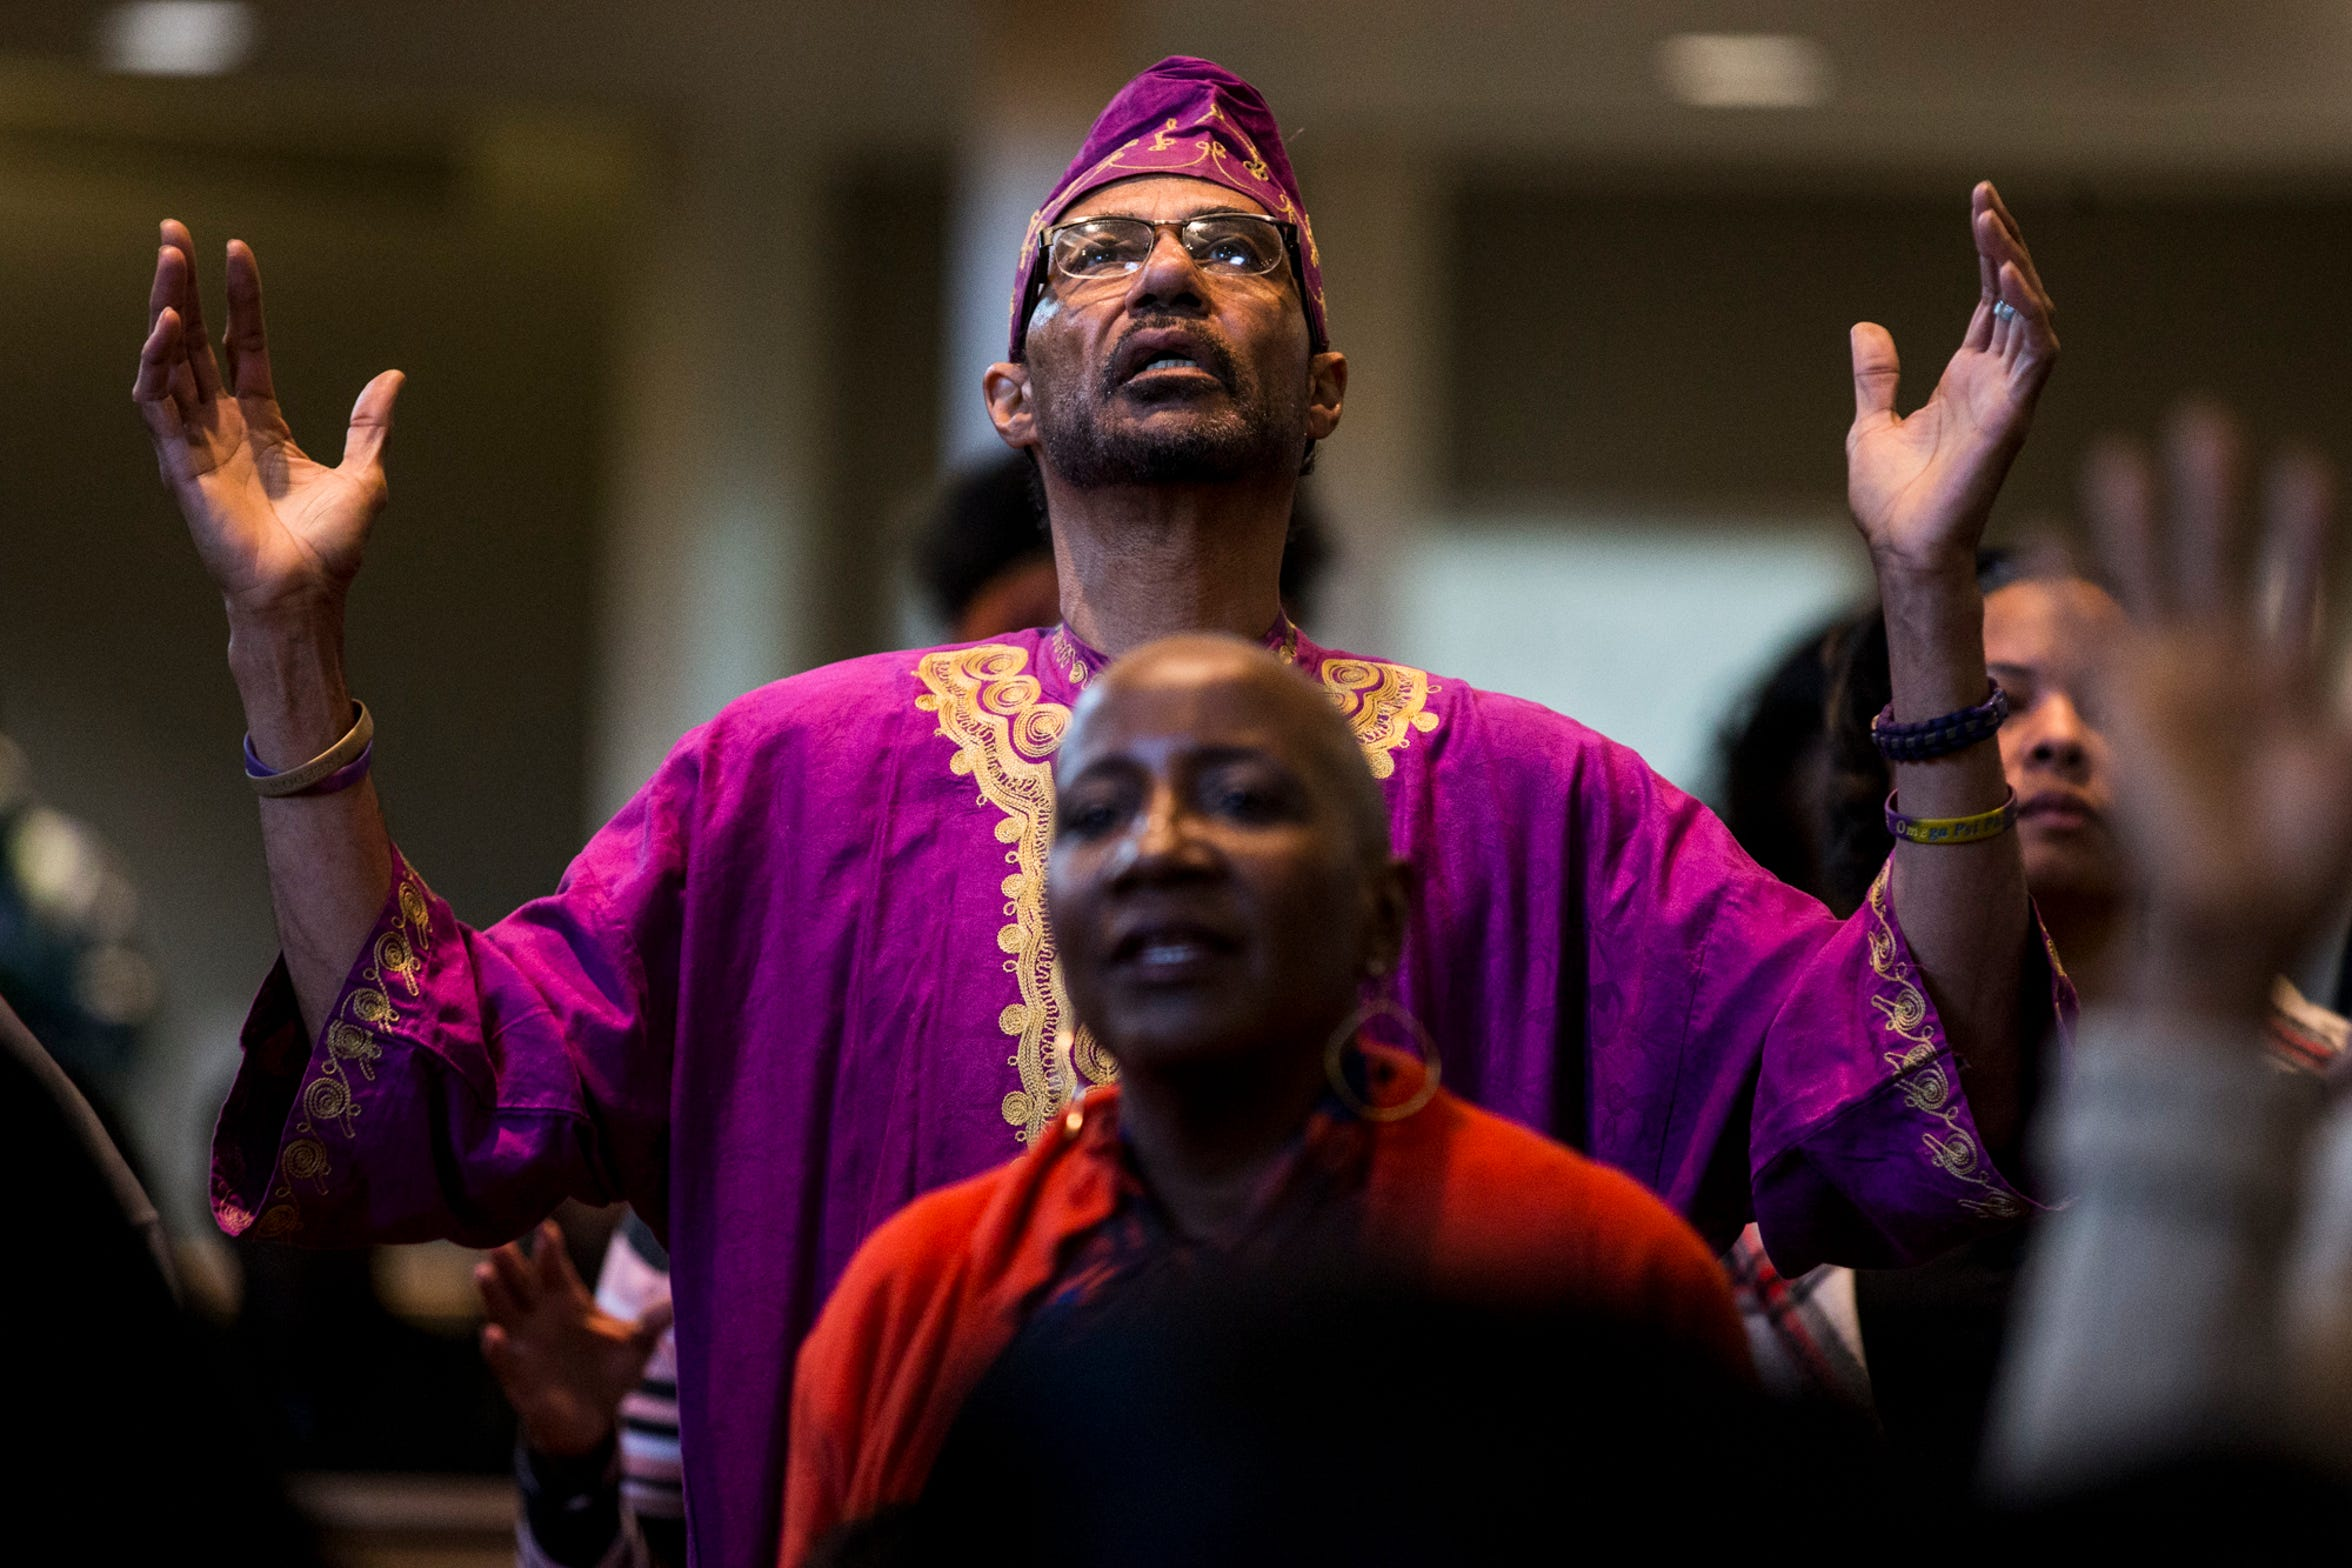 A congregant raises his arms during the 7:30 a.m. service on Feb. 24, 2019, at Pilgrim Rest Baptist Church in Phoenix.